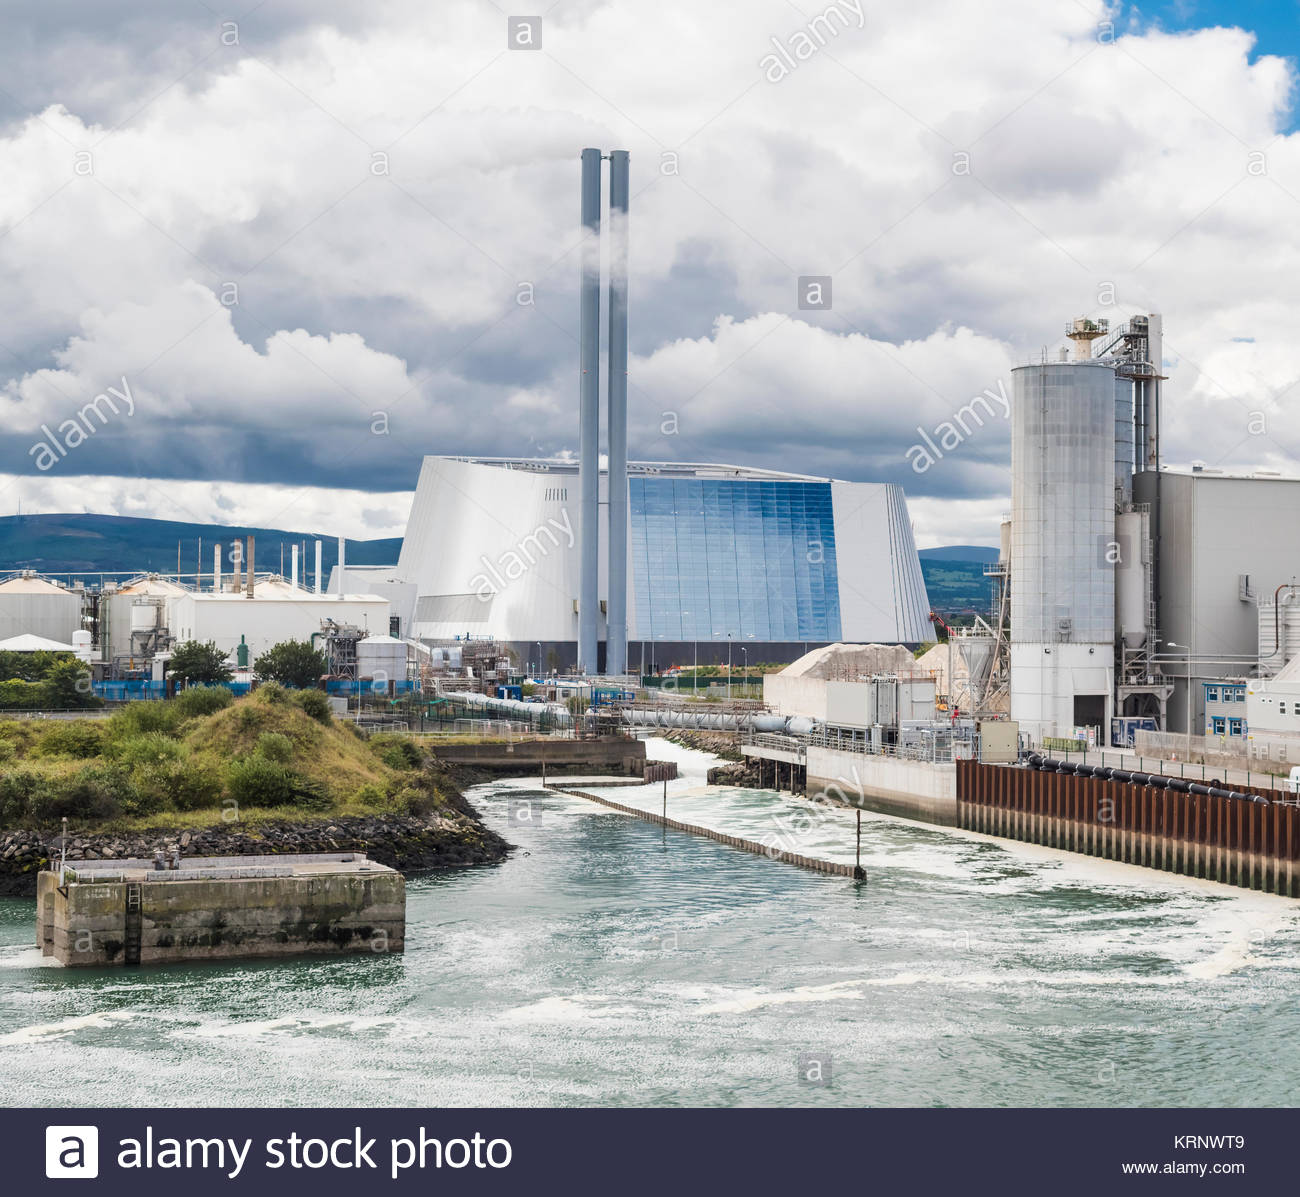 the-dublin-waste-to-energy-facility-is-an-incinerator-on-the-poolbeg-KRNWT9.jpg